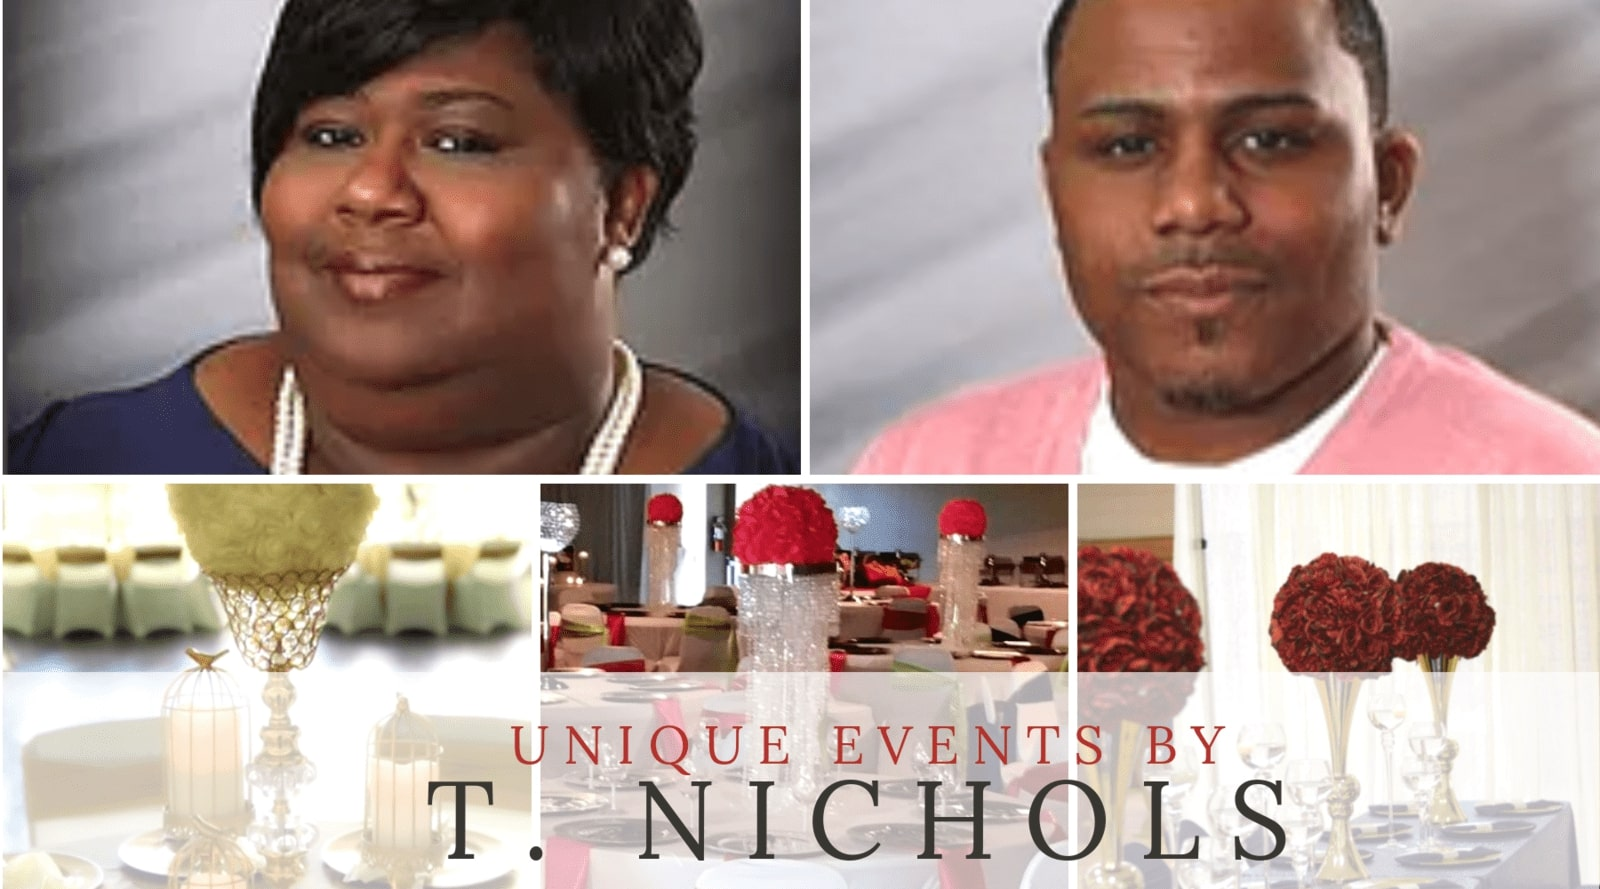 Today's Expert: Unique Events by T. Nichols